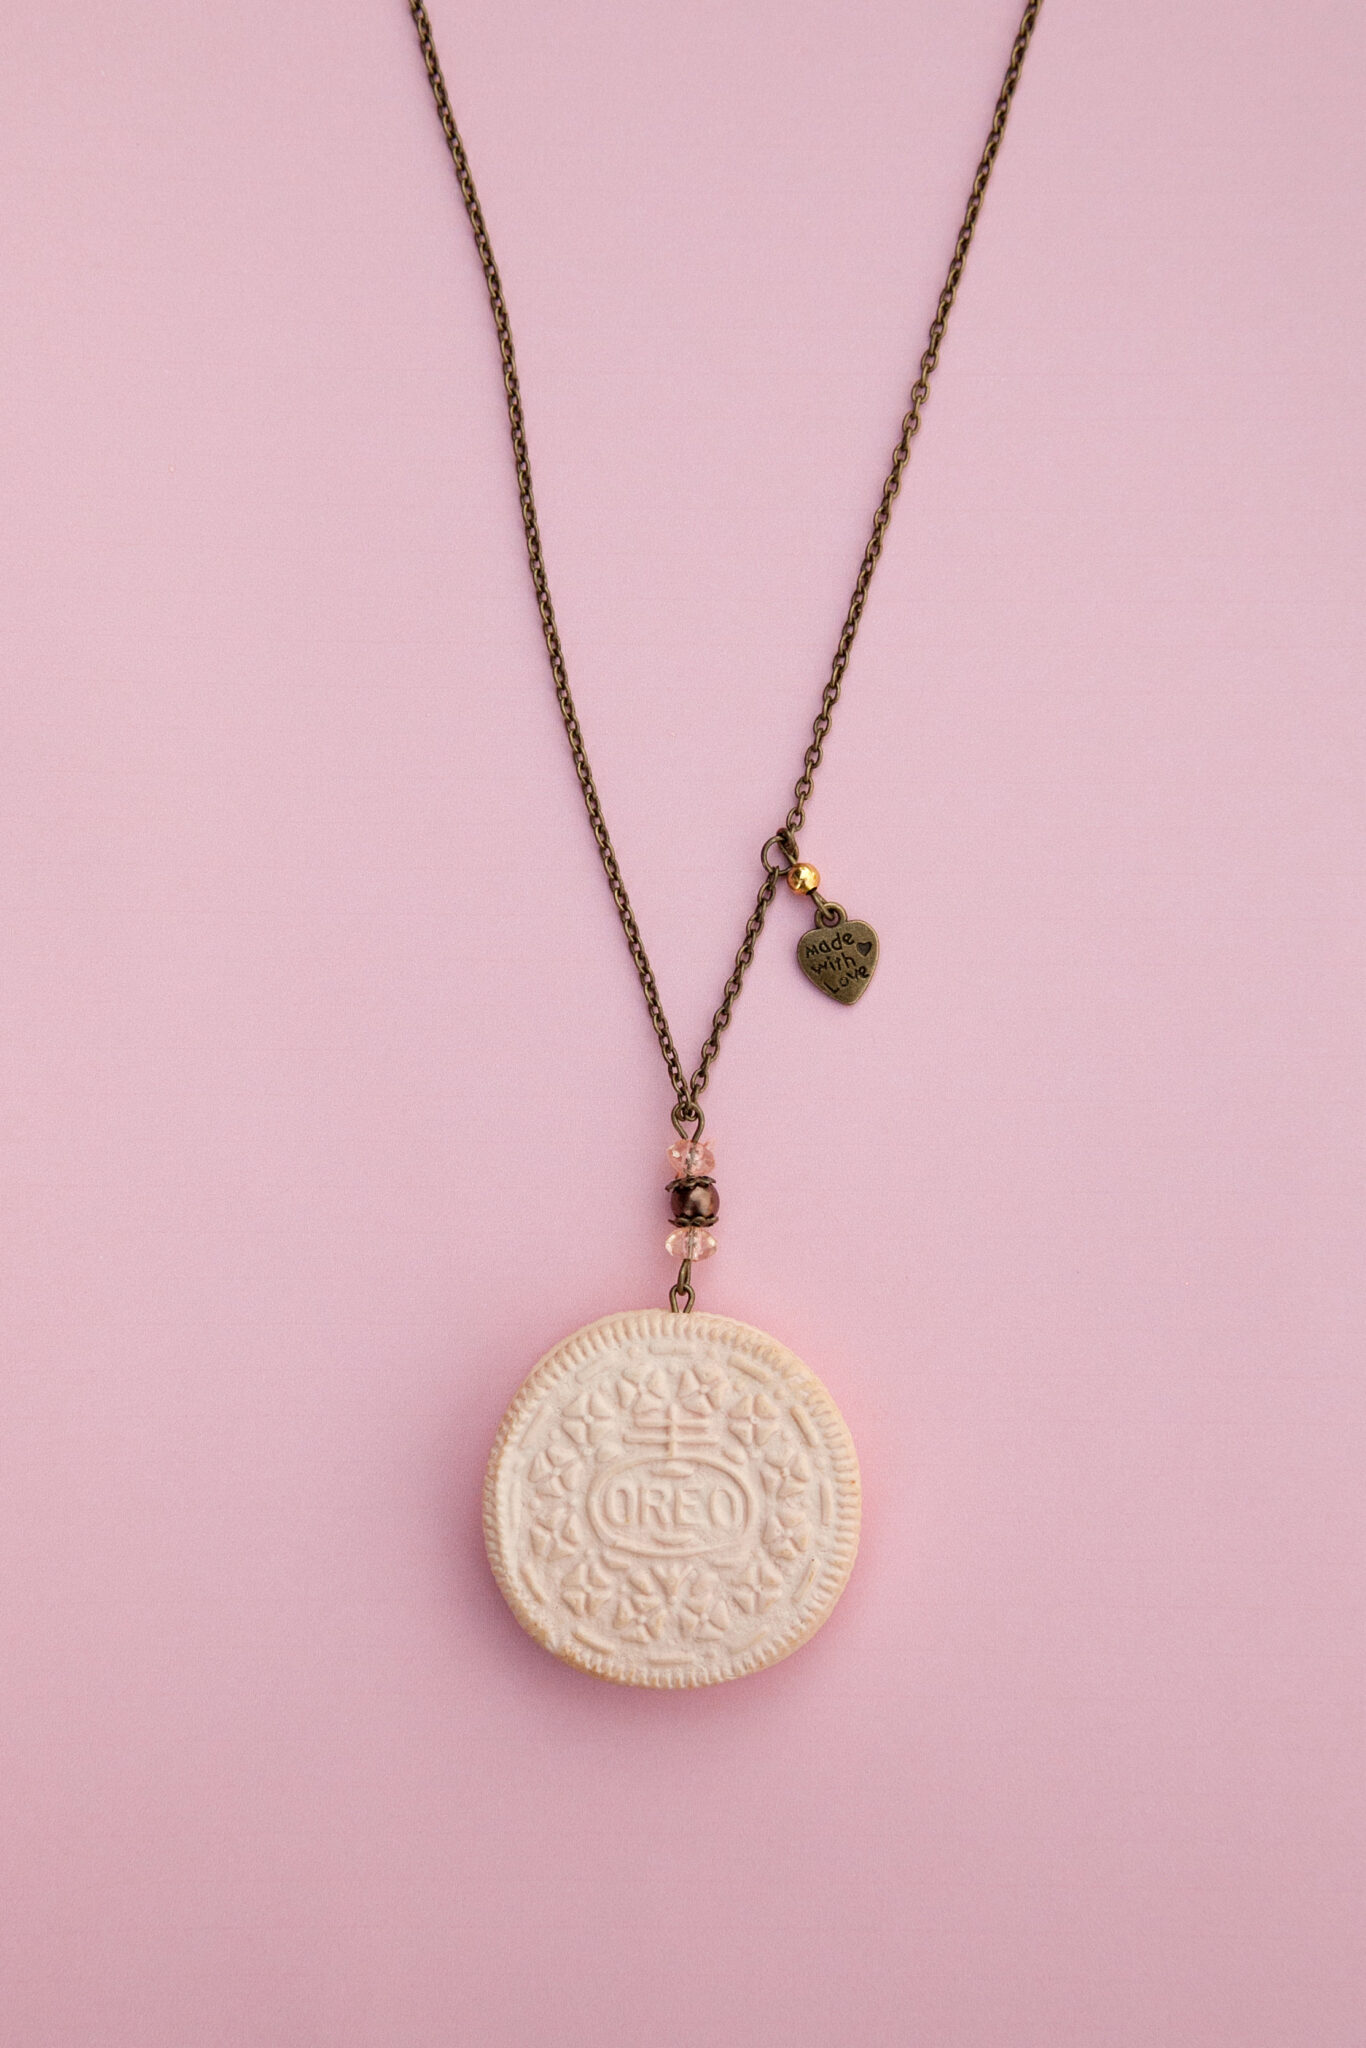 Cute oreo cookie ilianne jewelry made of love for How can i tell if my jewelry is real gold